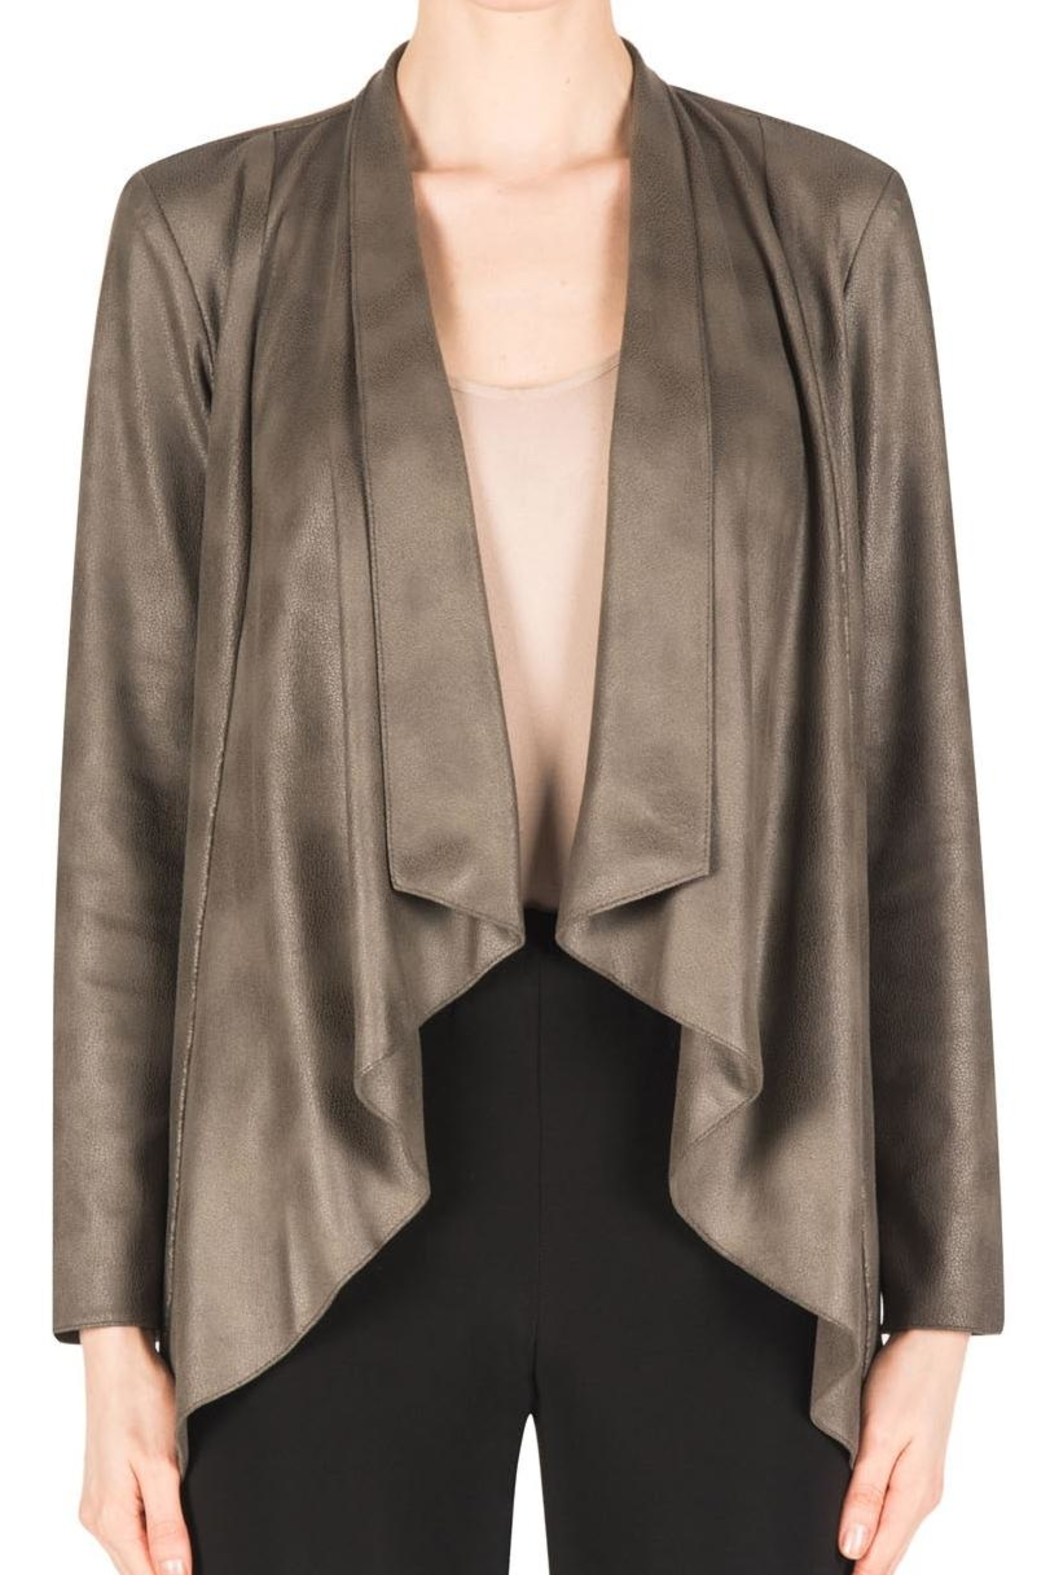 Joseph Ribkoff Faux Suede Jacket - Front Cropped Image